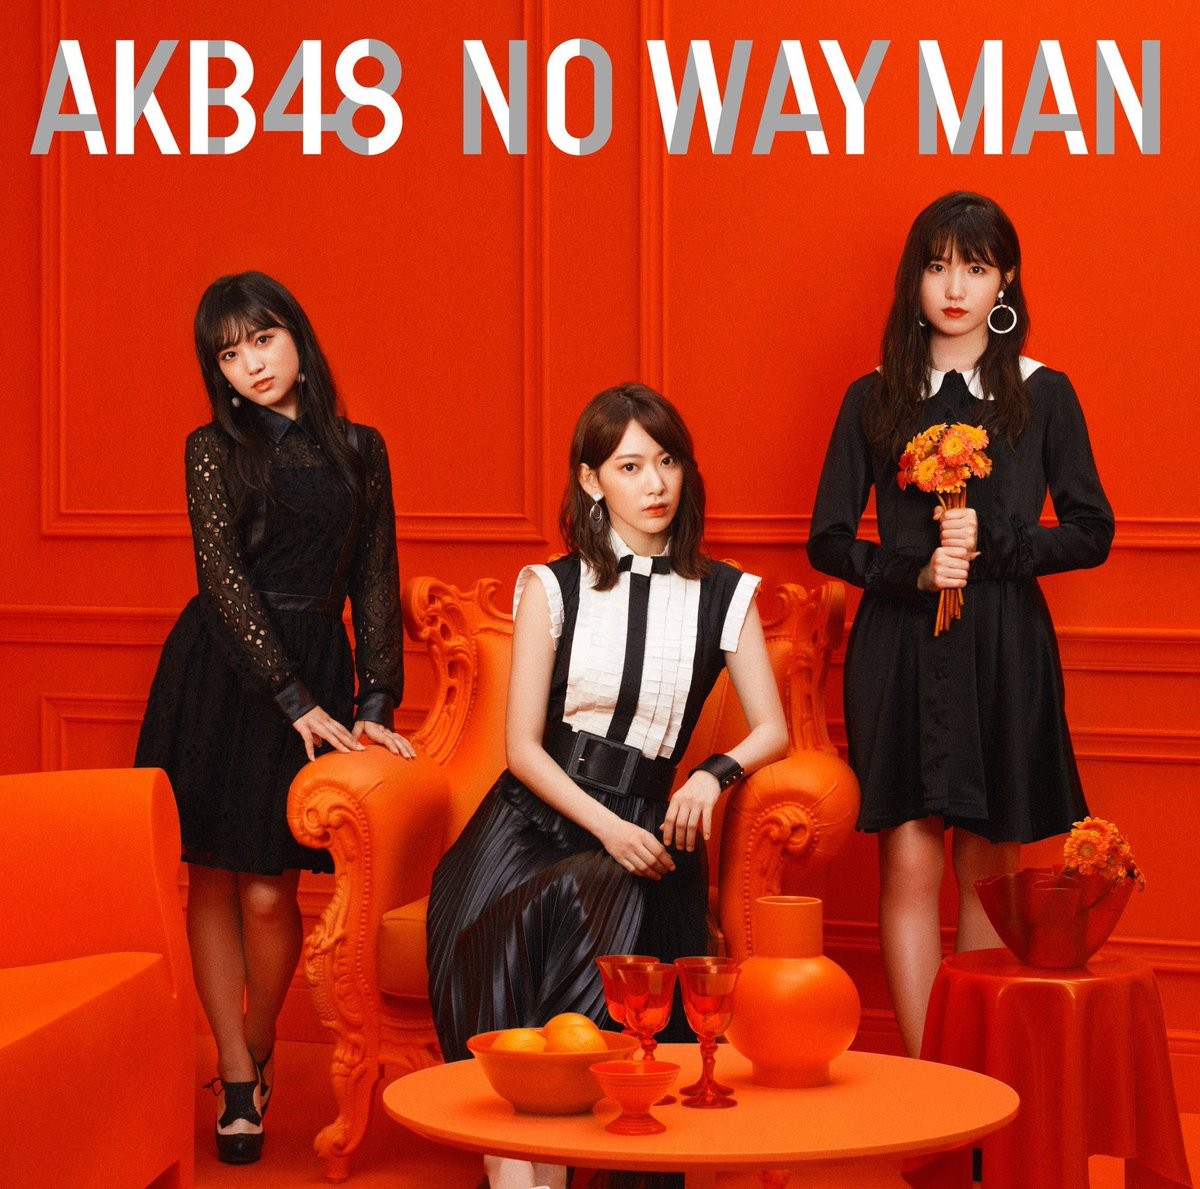 AKB48 – NO WAY MAN [FLAC + MP3 320 / CD] [2018.11.28]